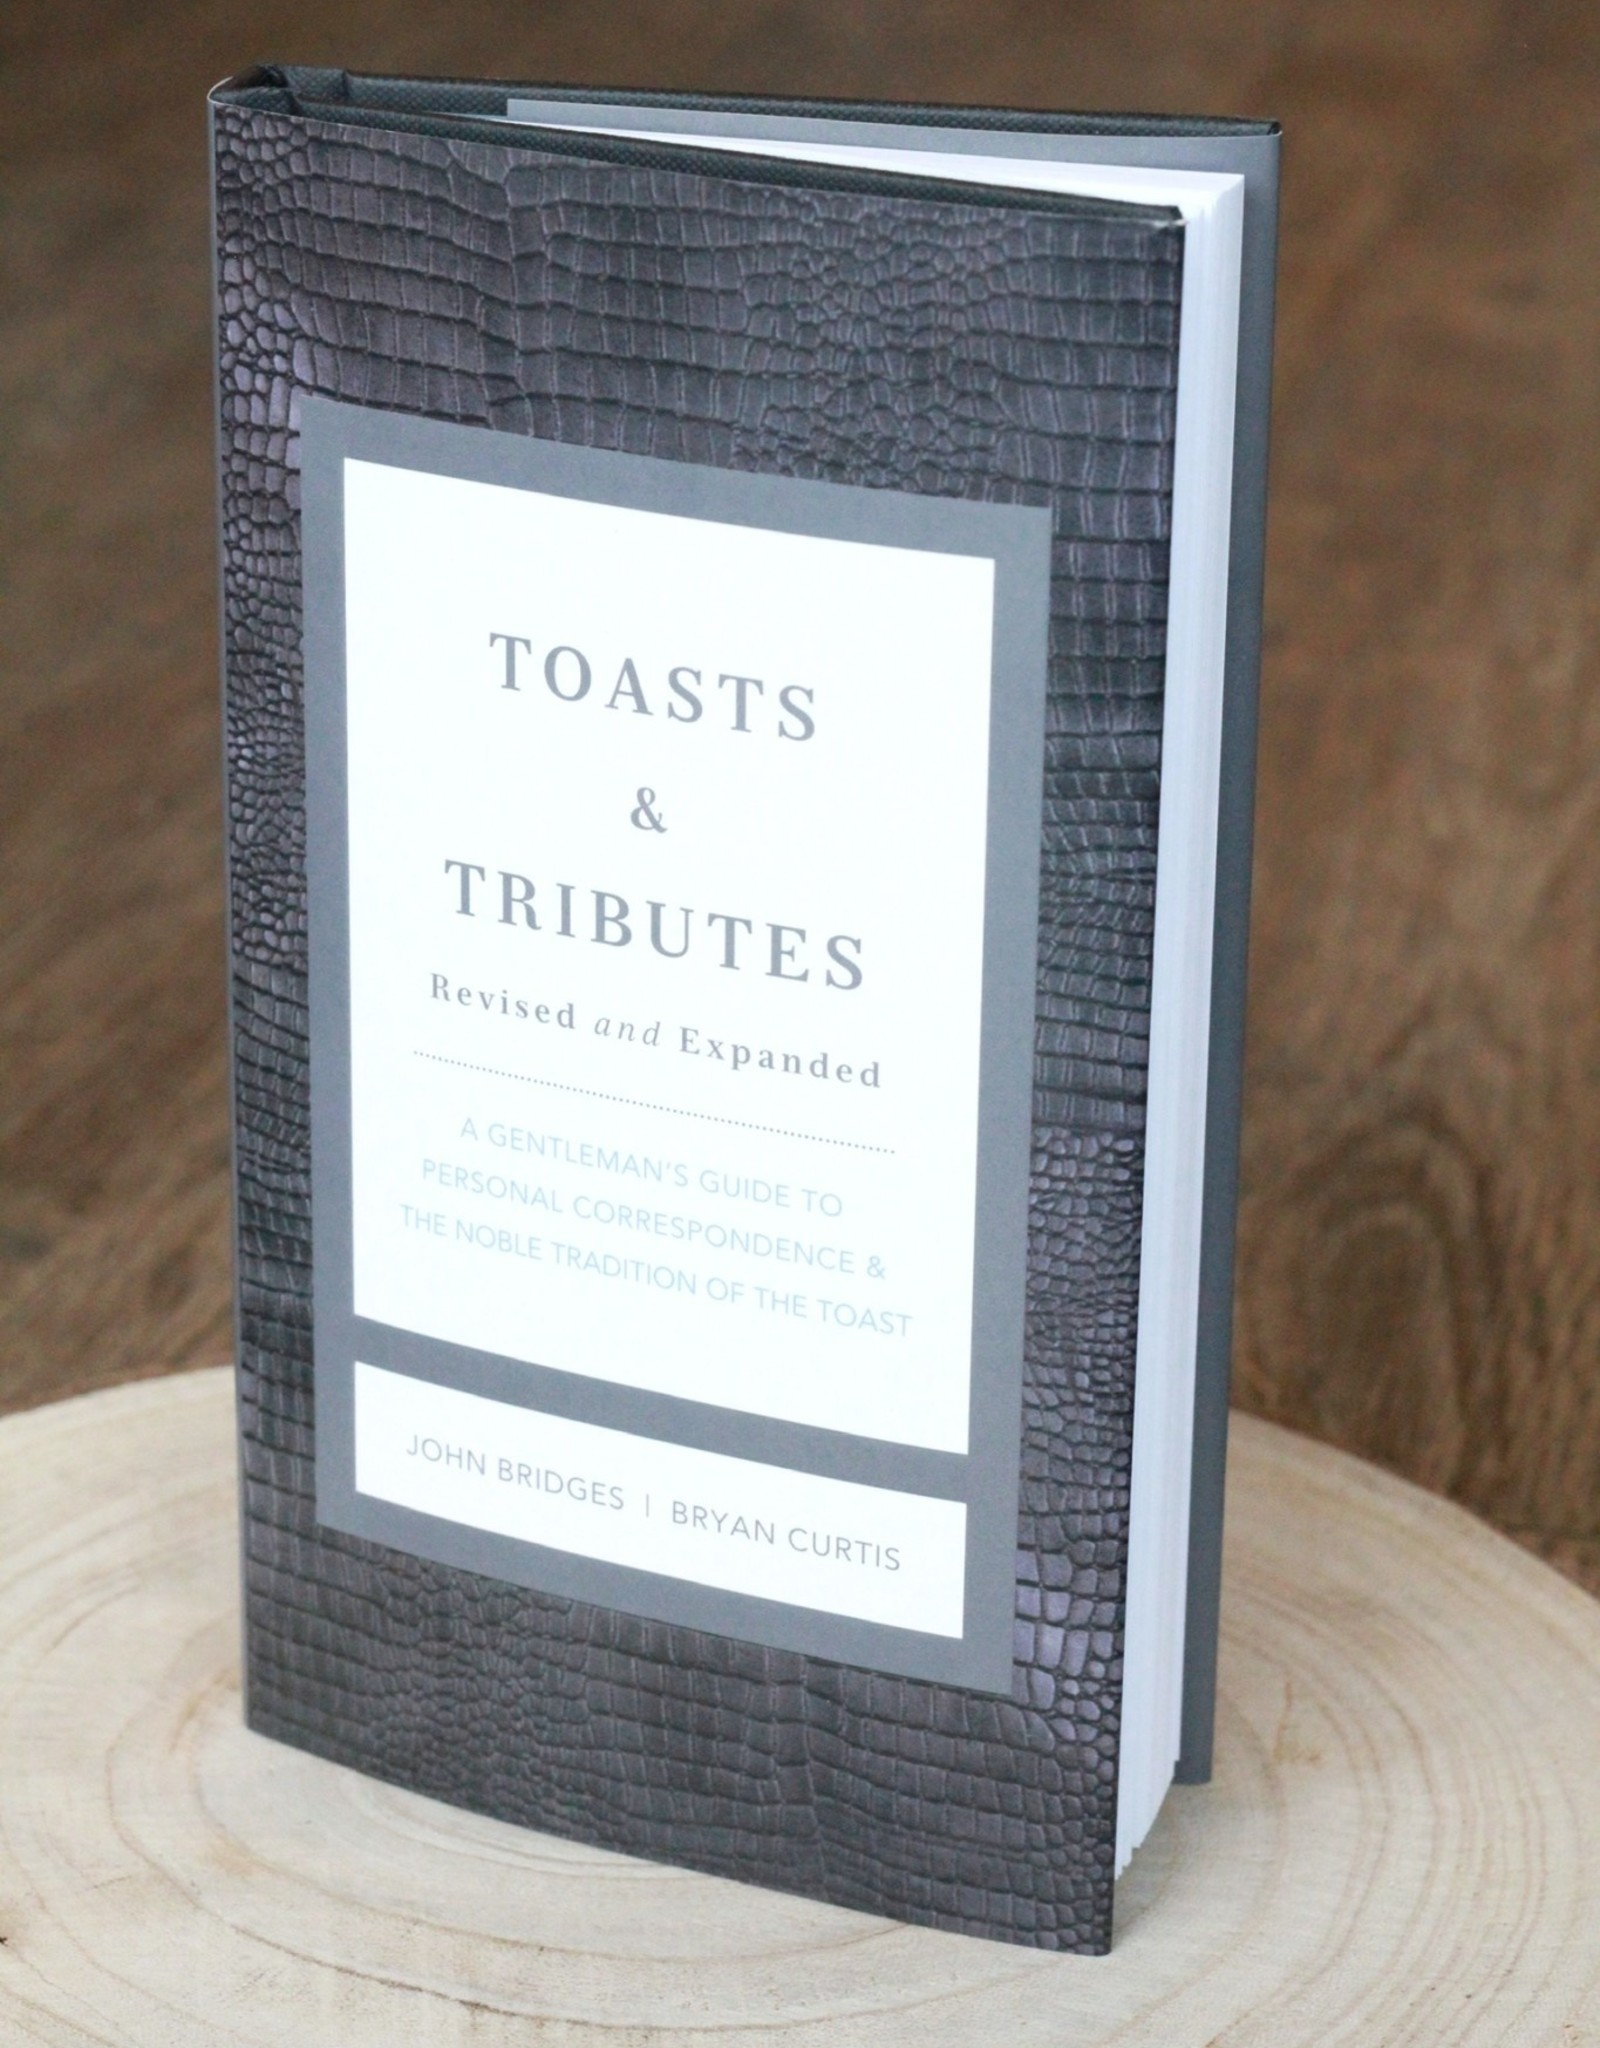 Toasts and Tributes